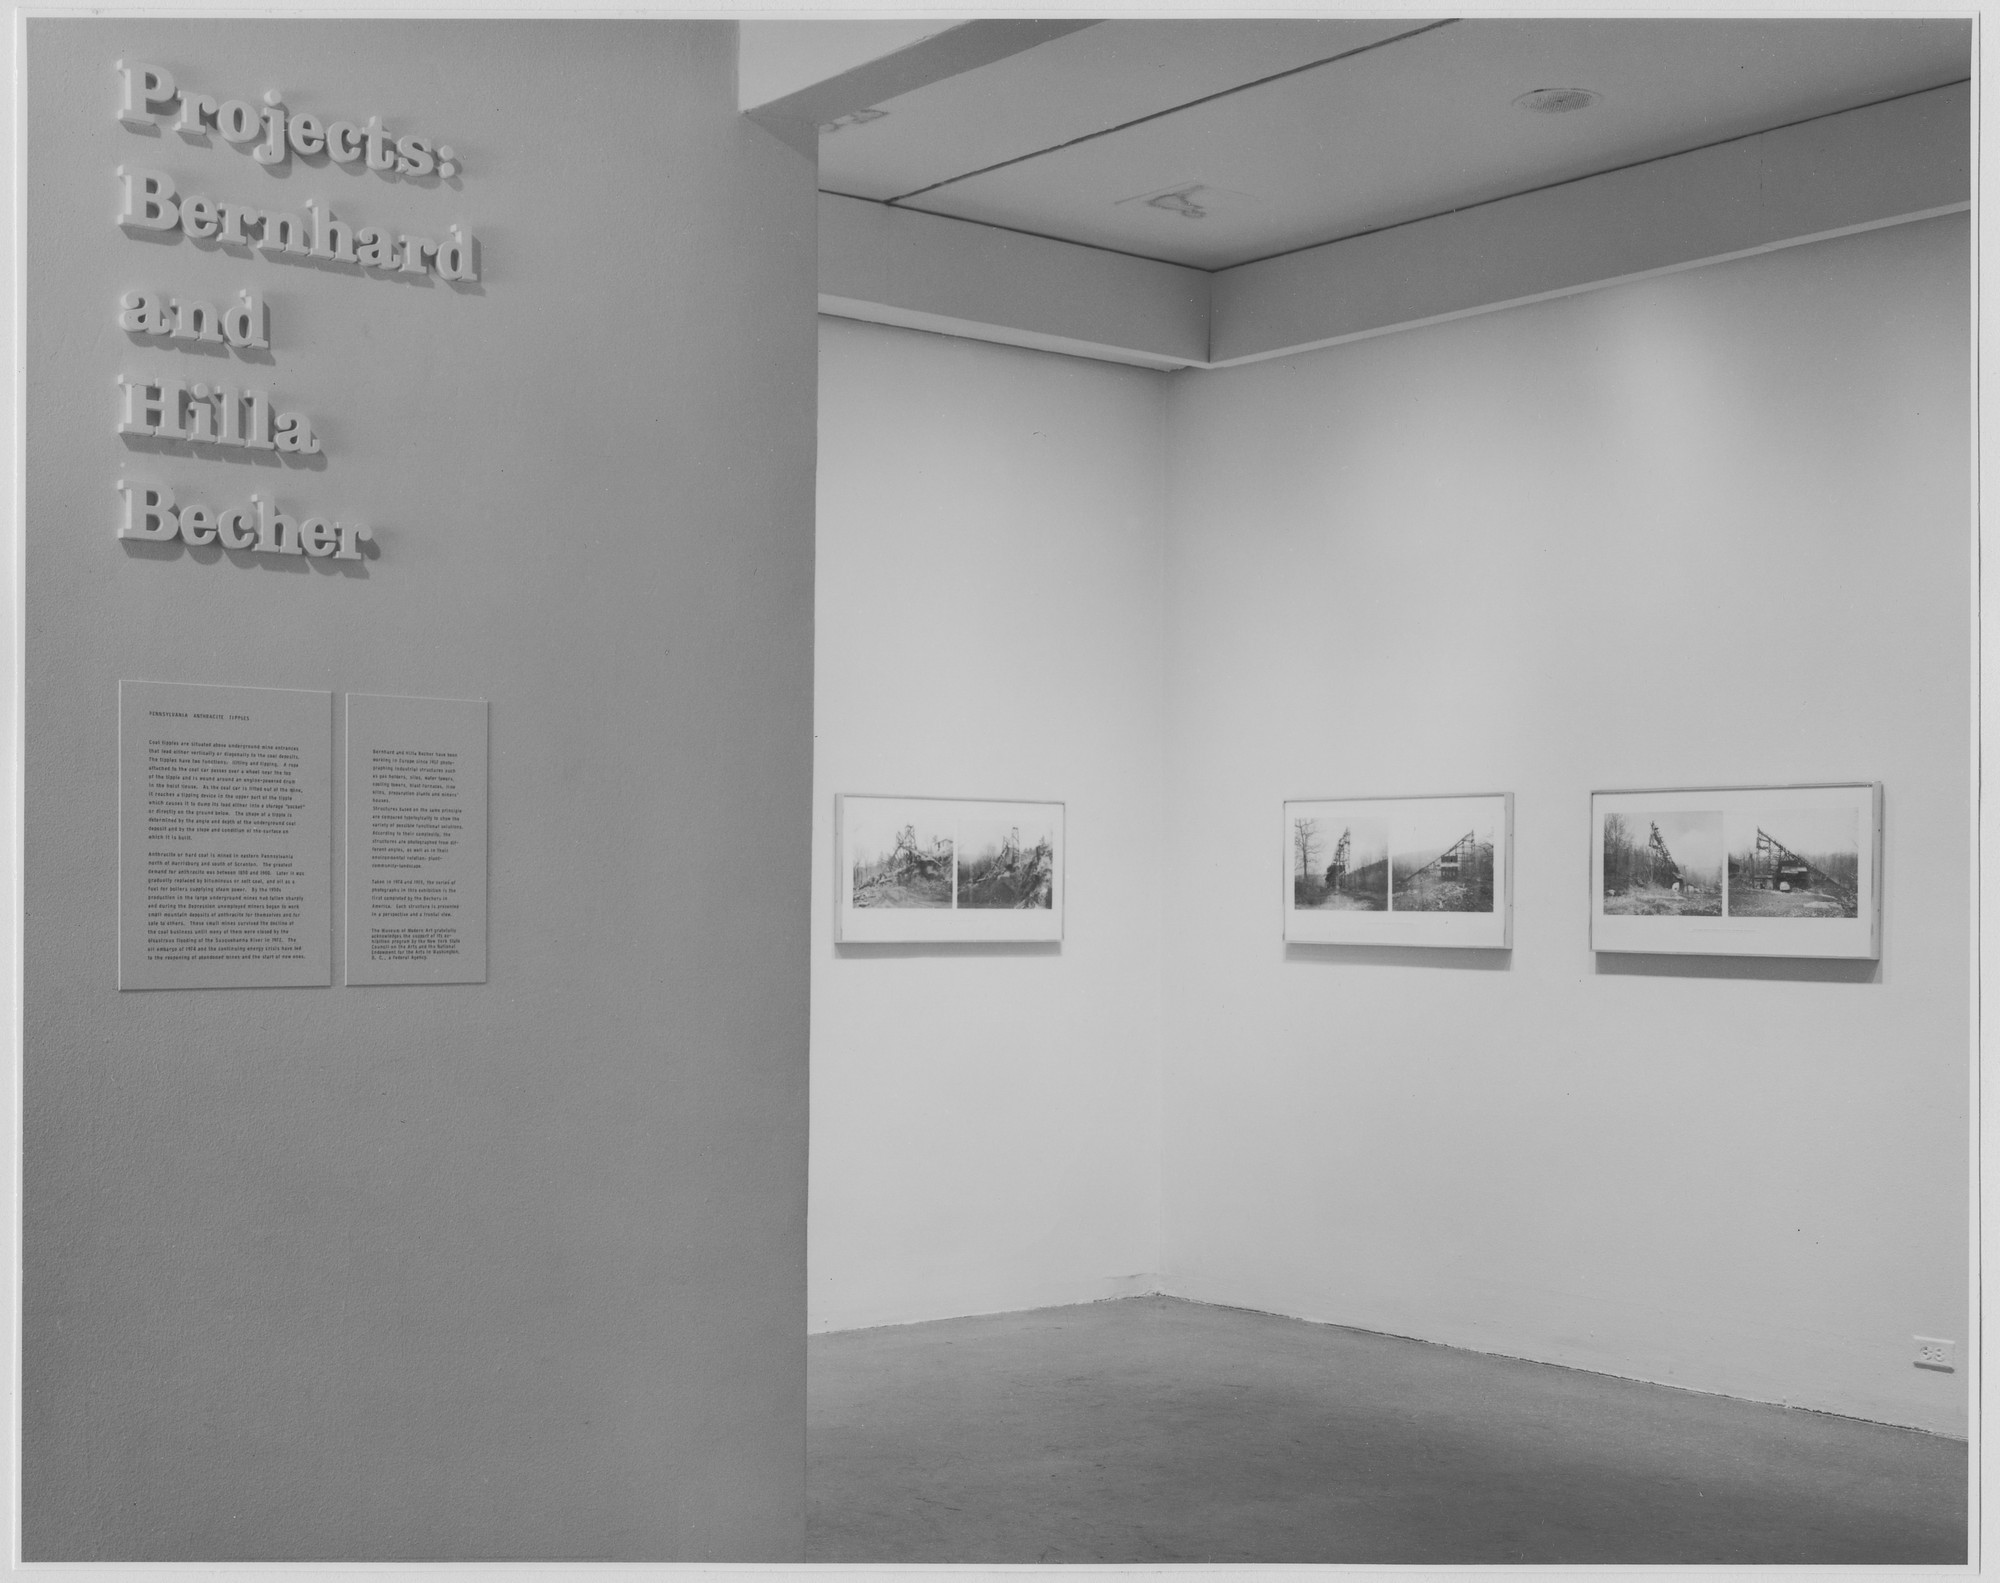 "Installation view of the exhibition, ""Projects: Bernhard and Hilla Becher."" December 8, 1975–January 22, 1976. Photographic Archive. The Museum of Modern Art Archives, New York. IN1115a.1. Photograph by David Allison."